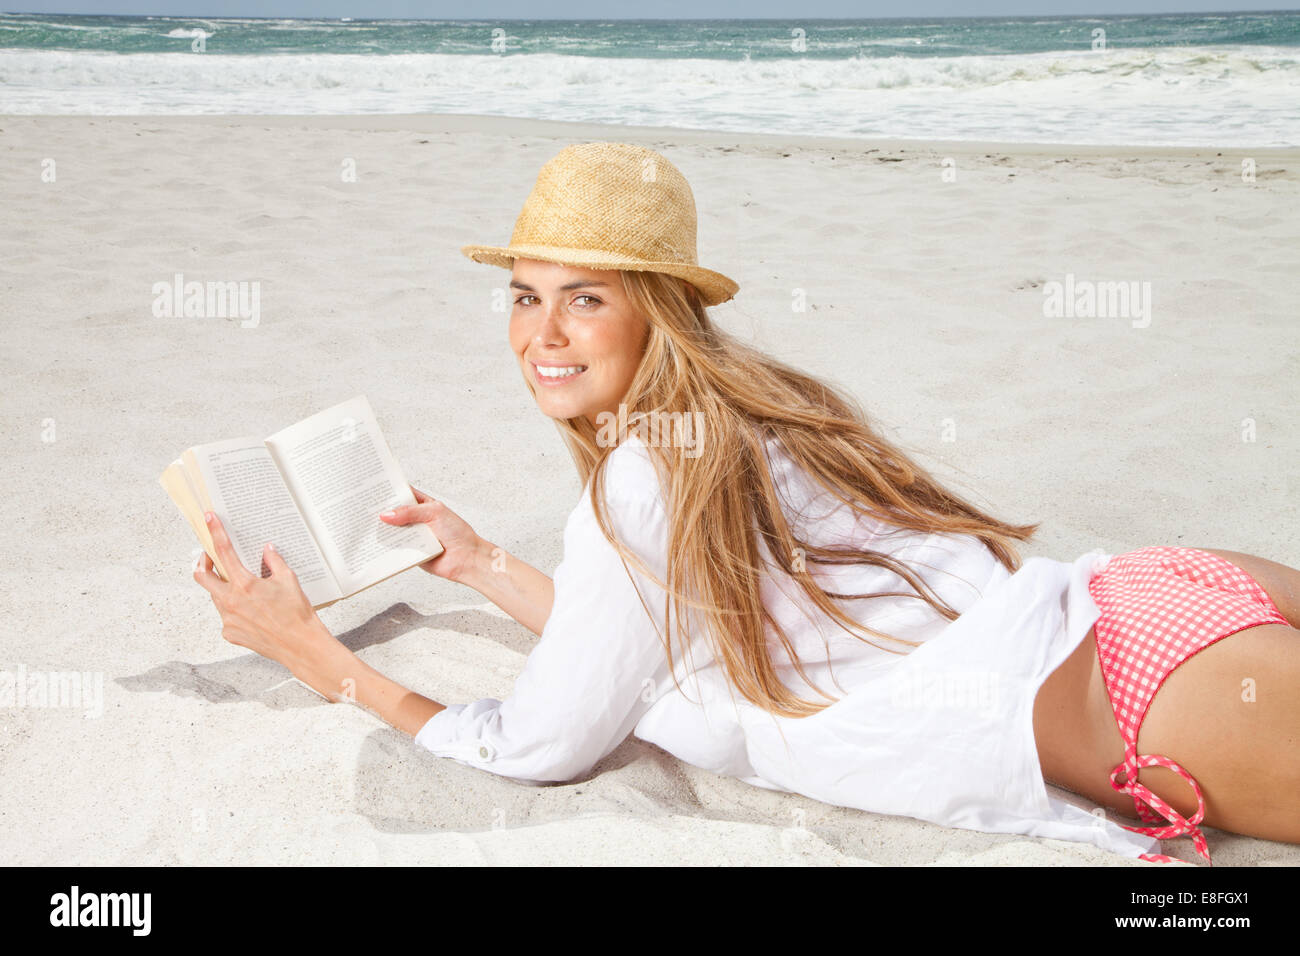 Woman lying on beach reading a book - Stock Image